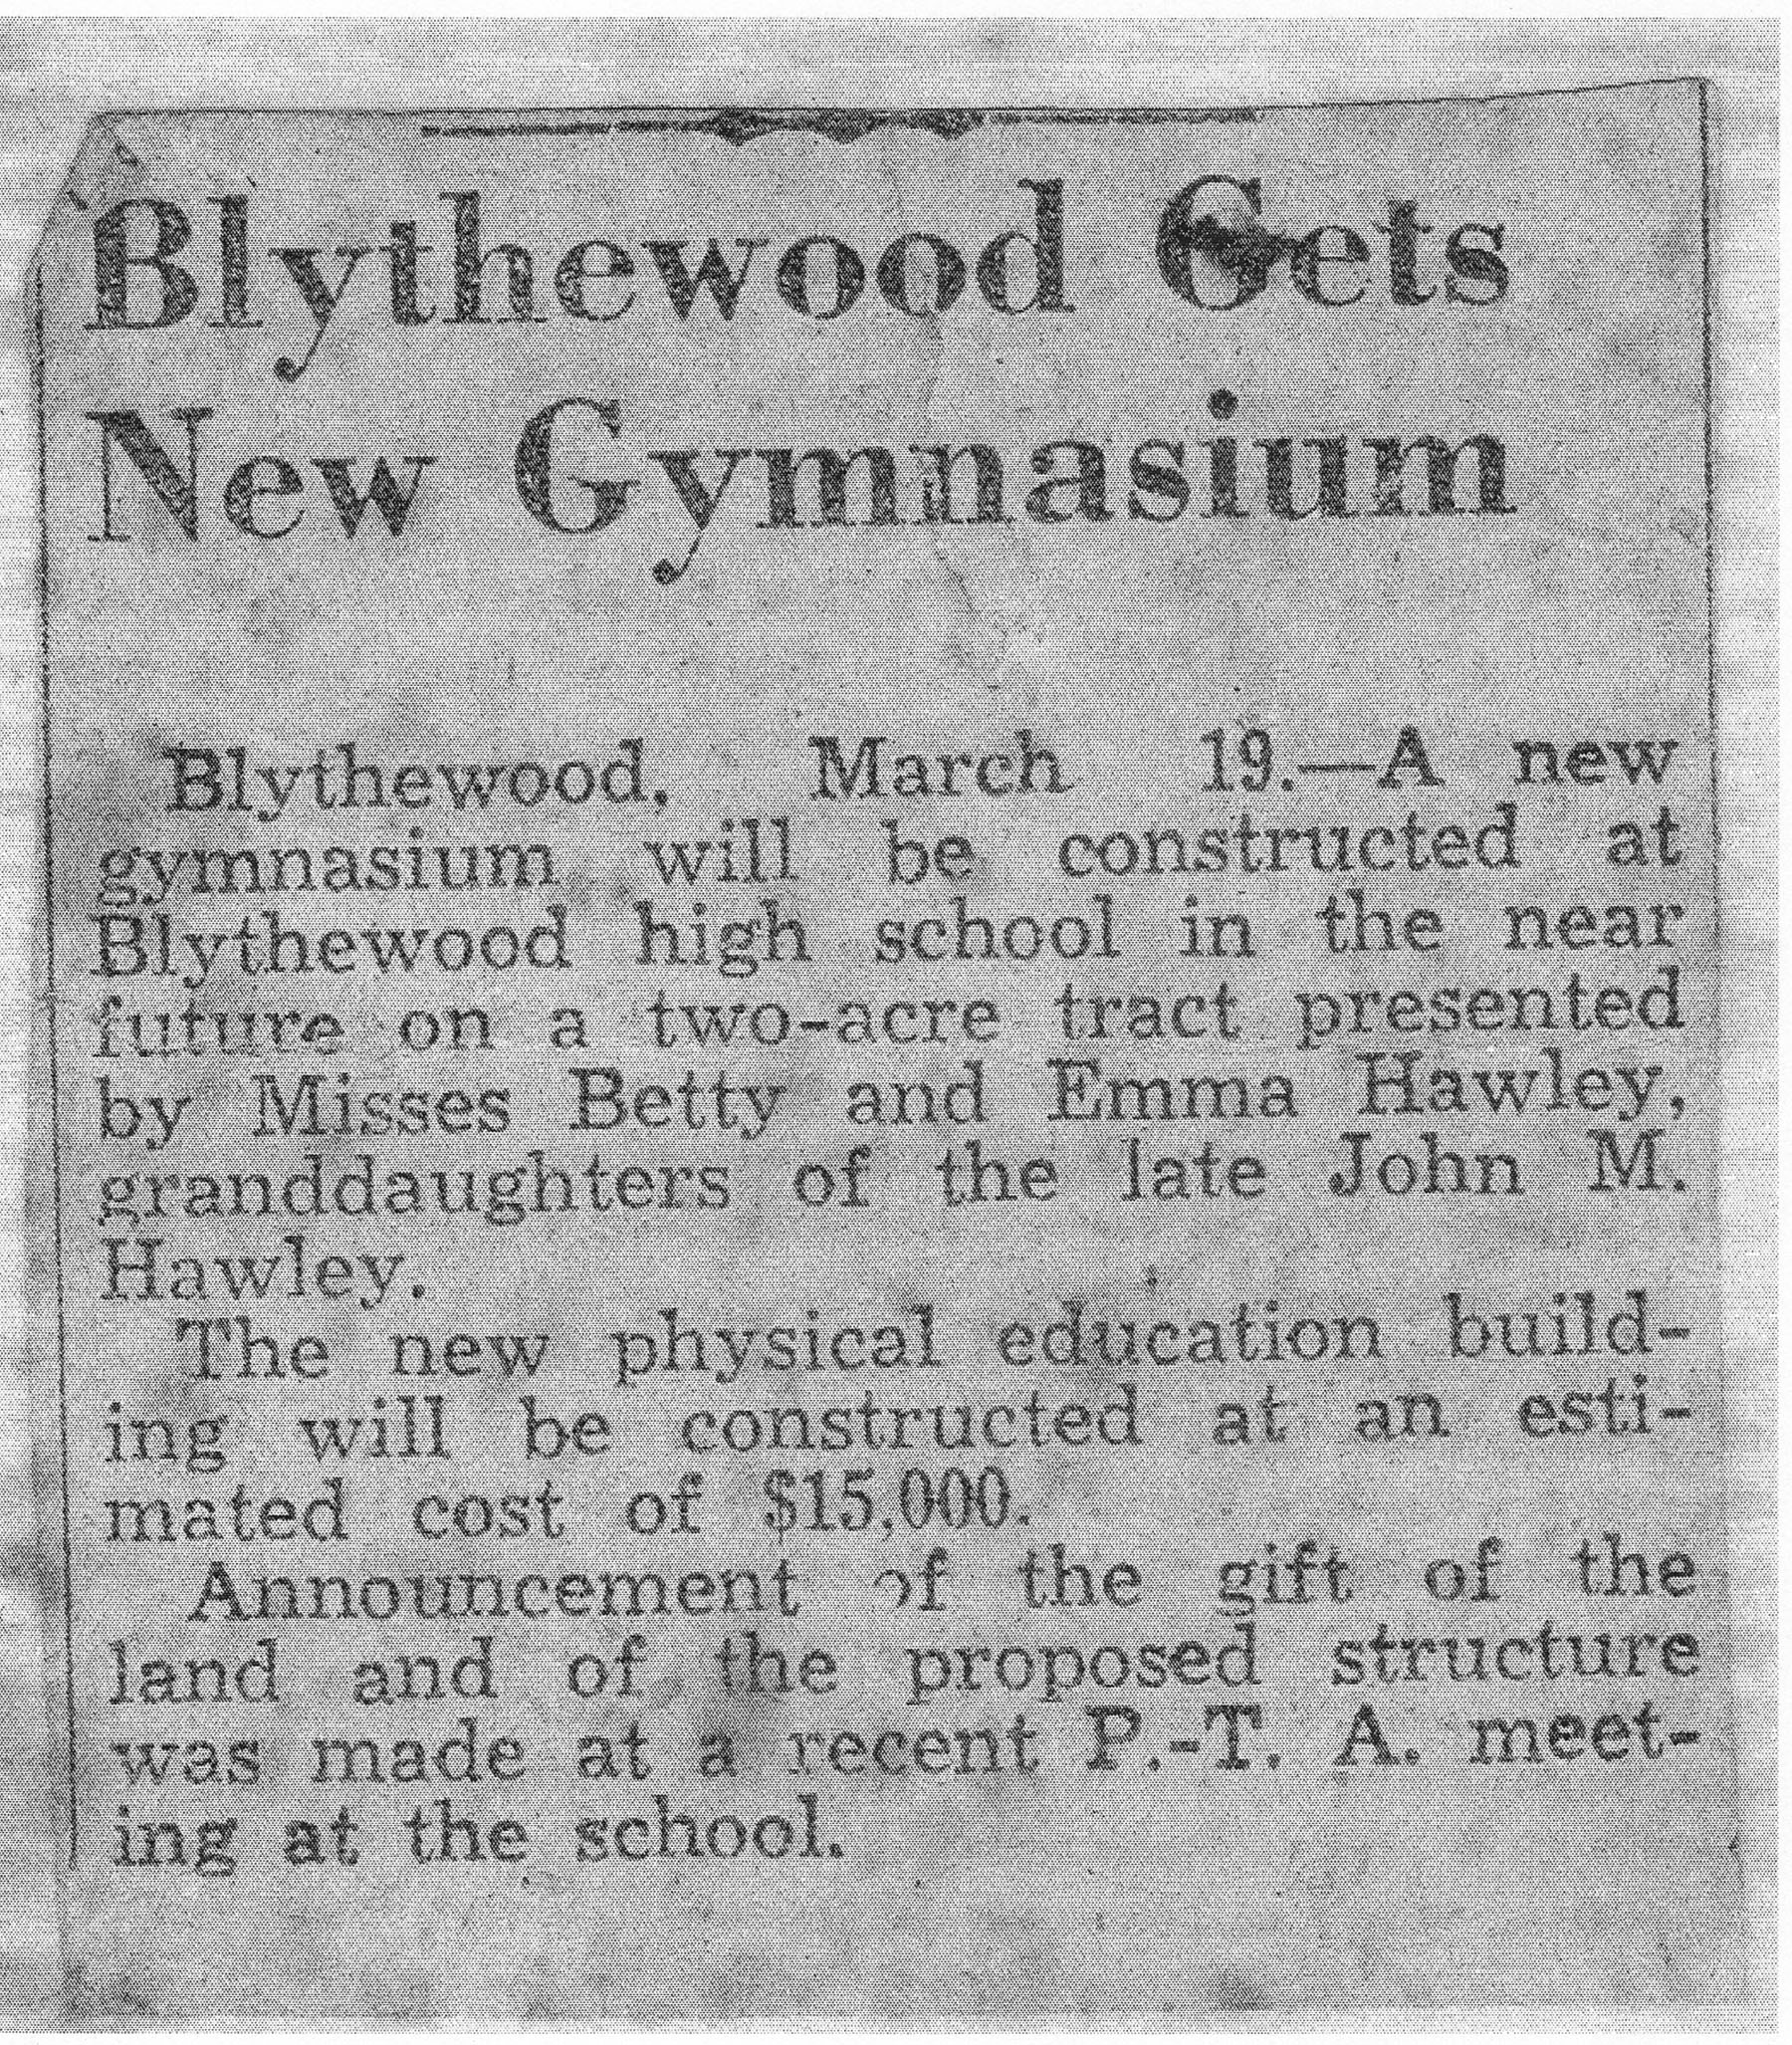 News Paper article announcing donation of land for new school gym.  Land given in honor of Betty and Emma Hawley.